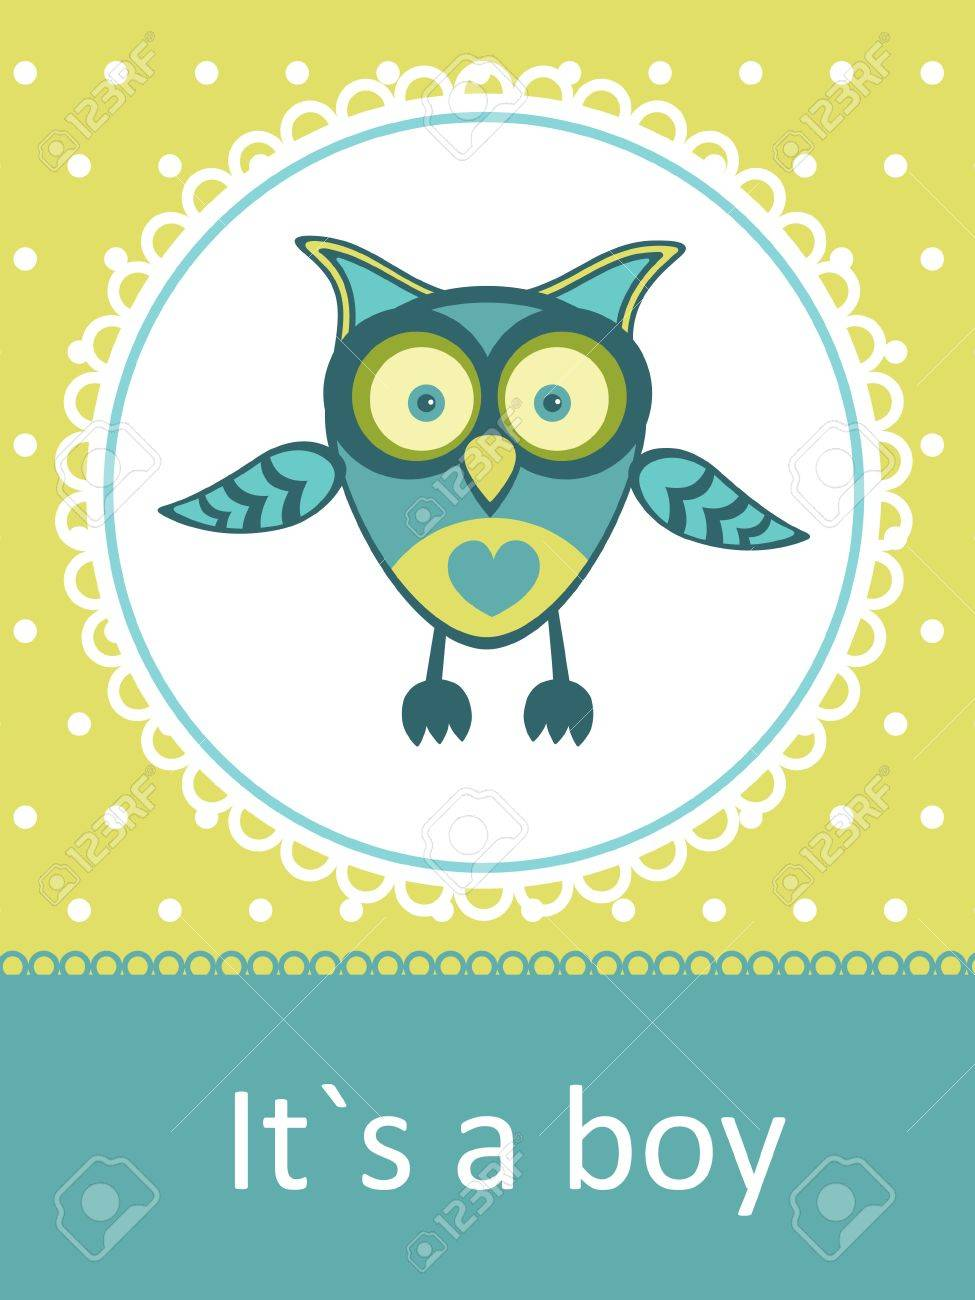 New Baby Announcement Card With Owl Stock Vector